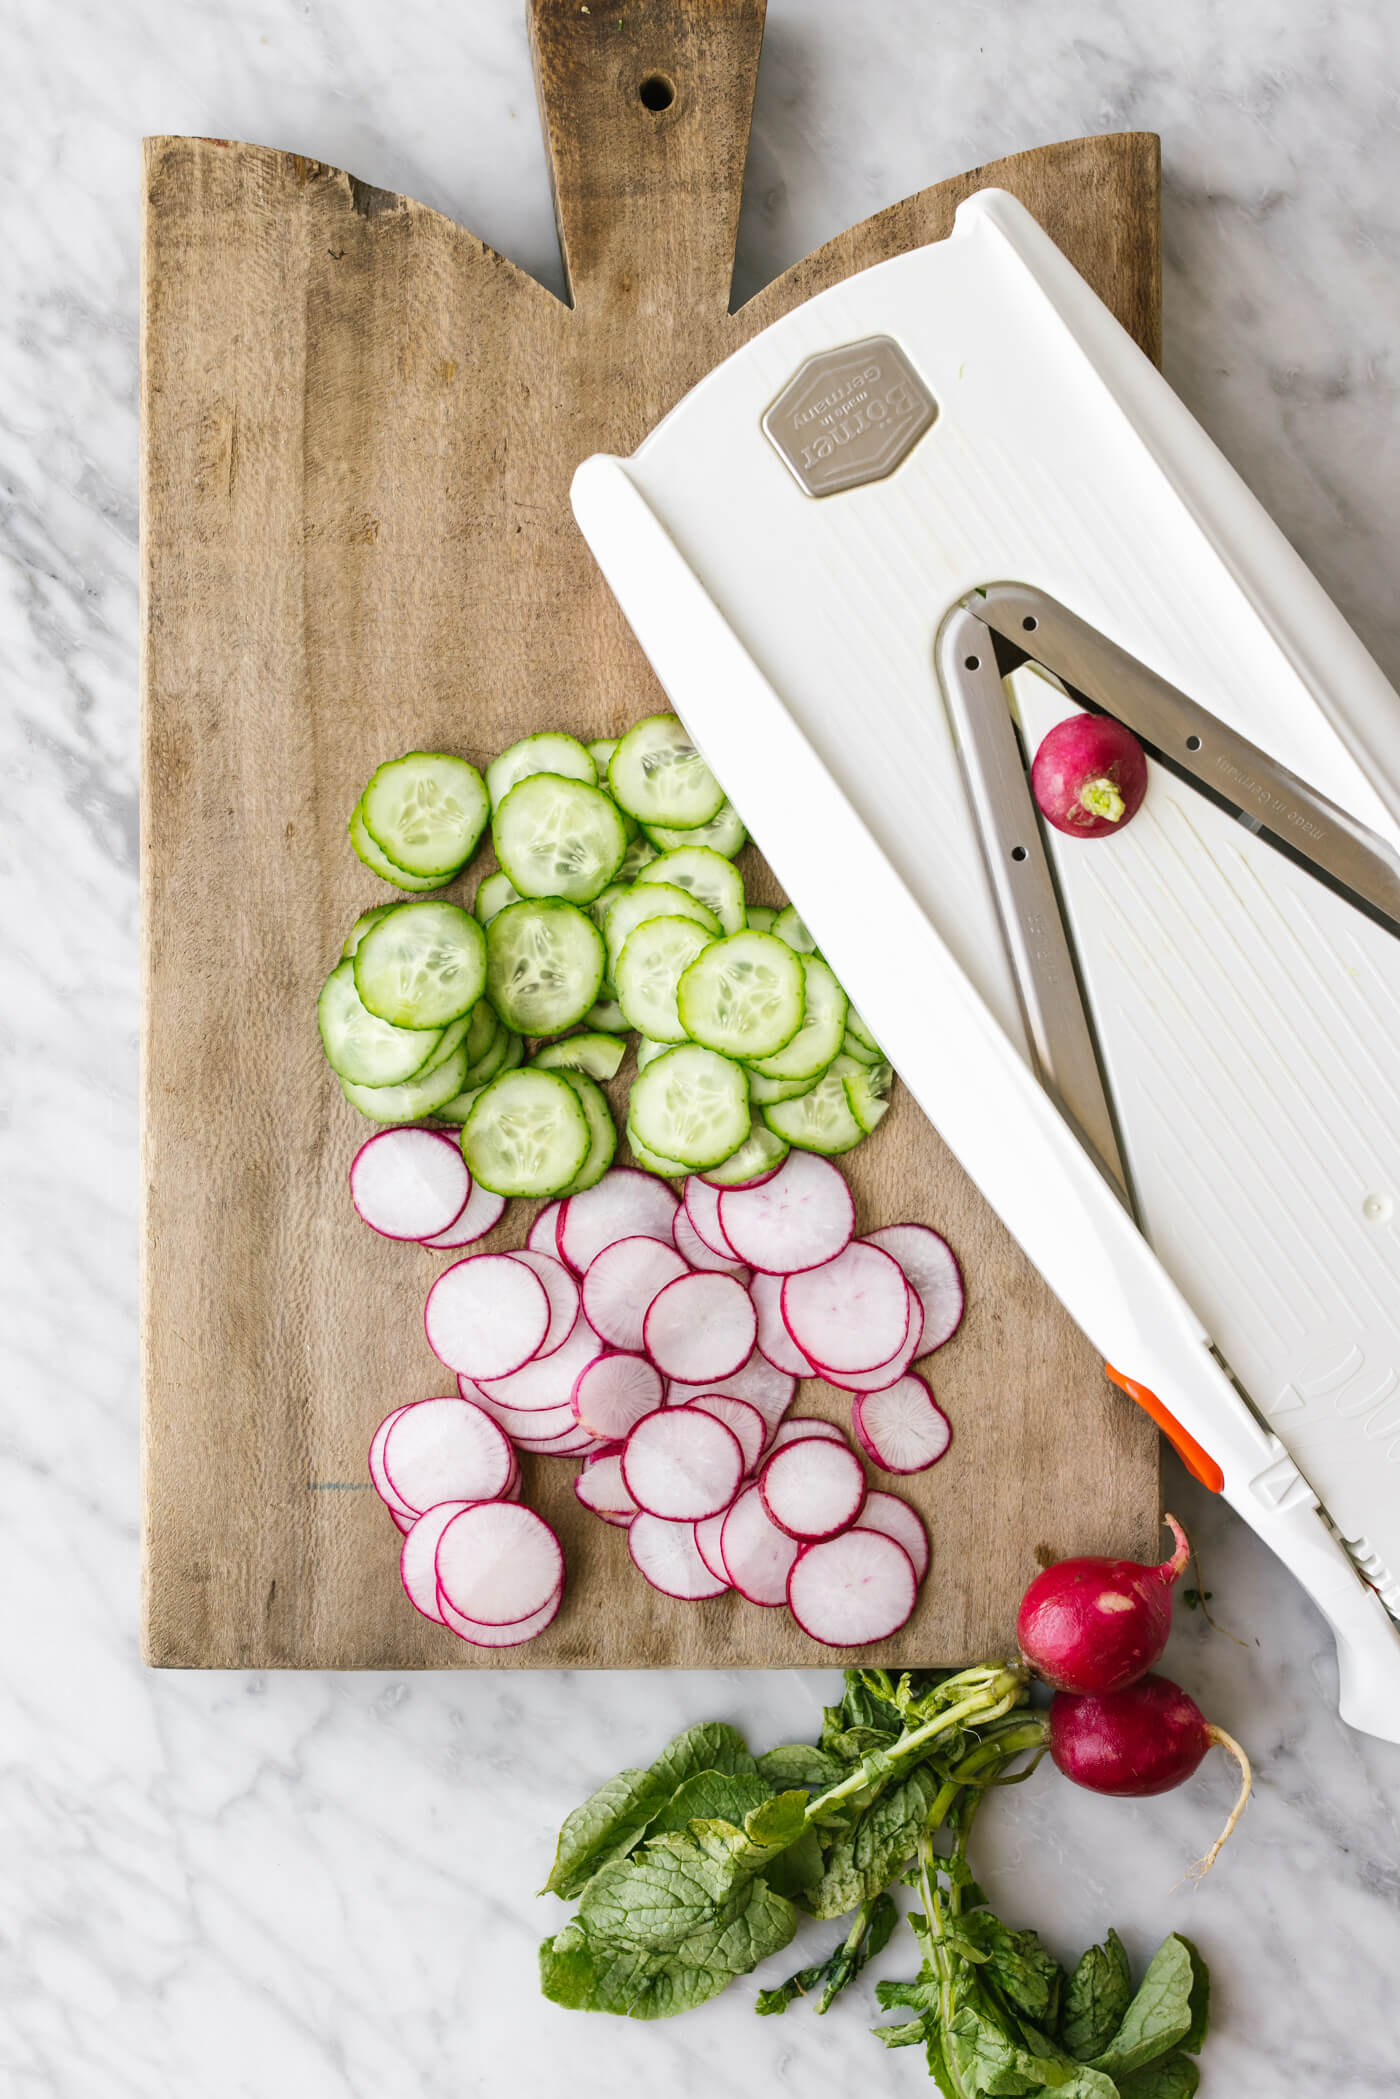 Slicing cucumbers and radish with a mandolin for a salad.